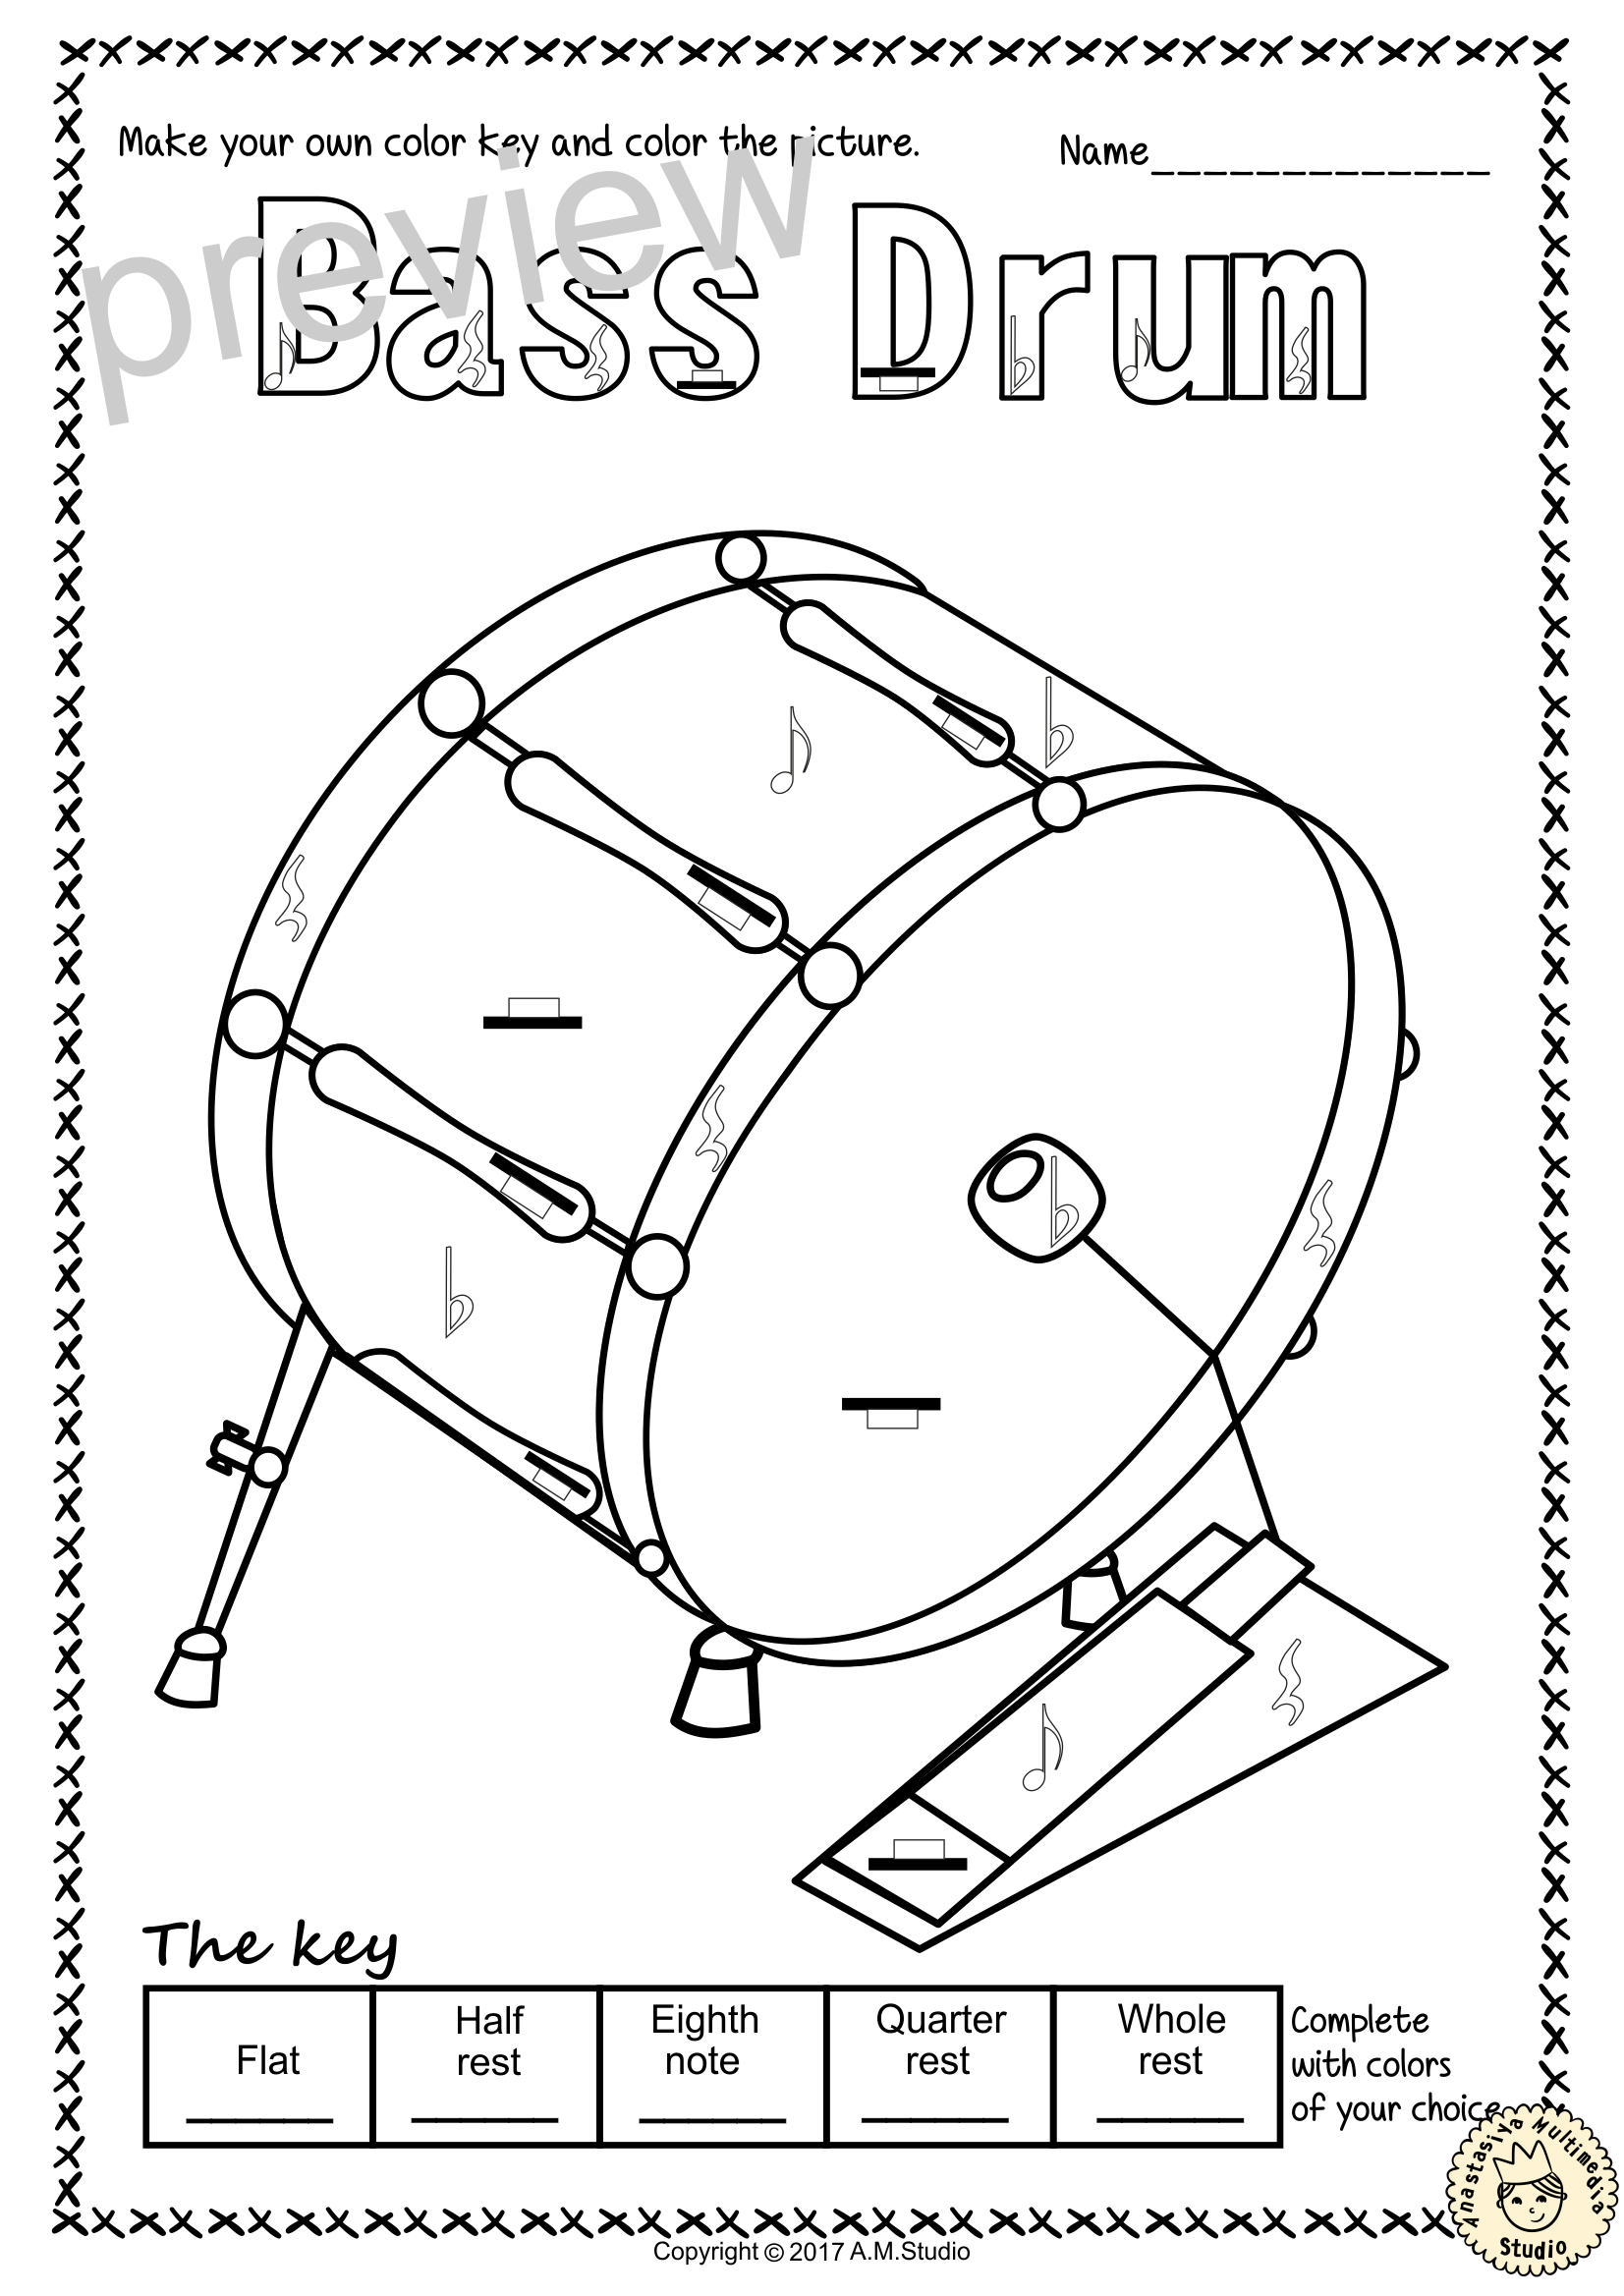 This Set Contains 16 Images Of Percussion Instruments Bass Drum Chime Tree Cymbals Castanets Gong Glocke Percussion Instruments Percussion Glockenspiel